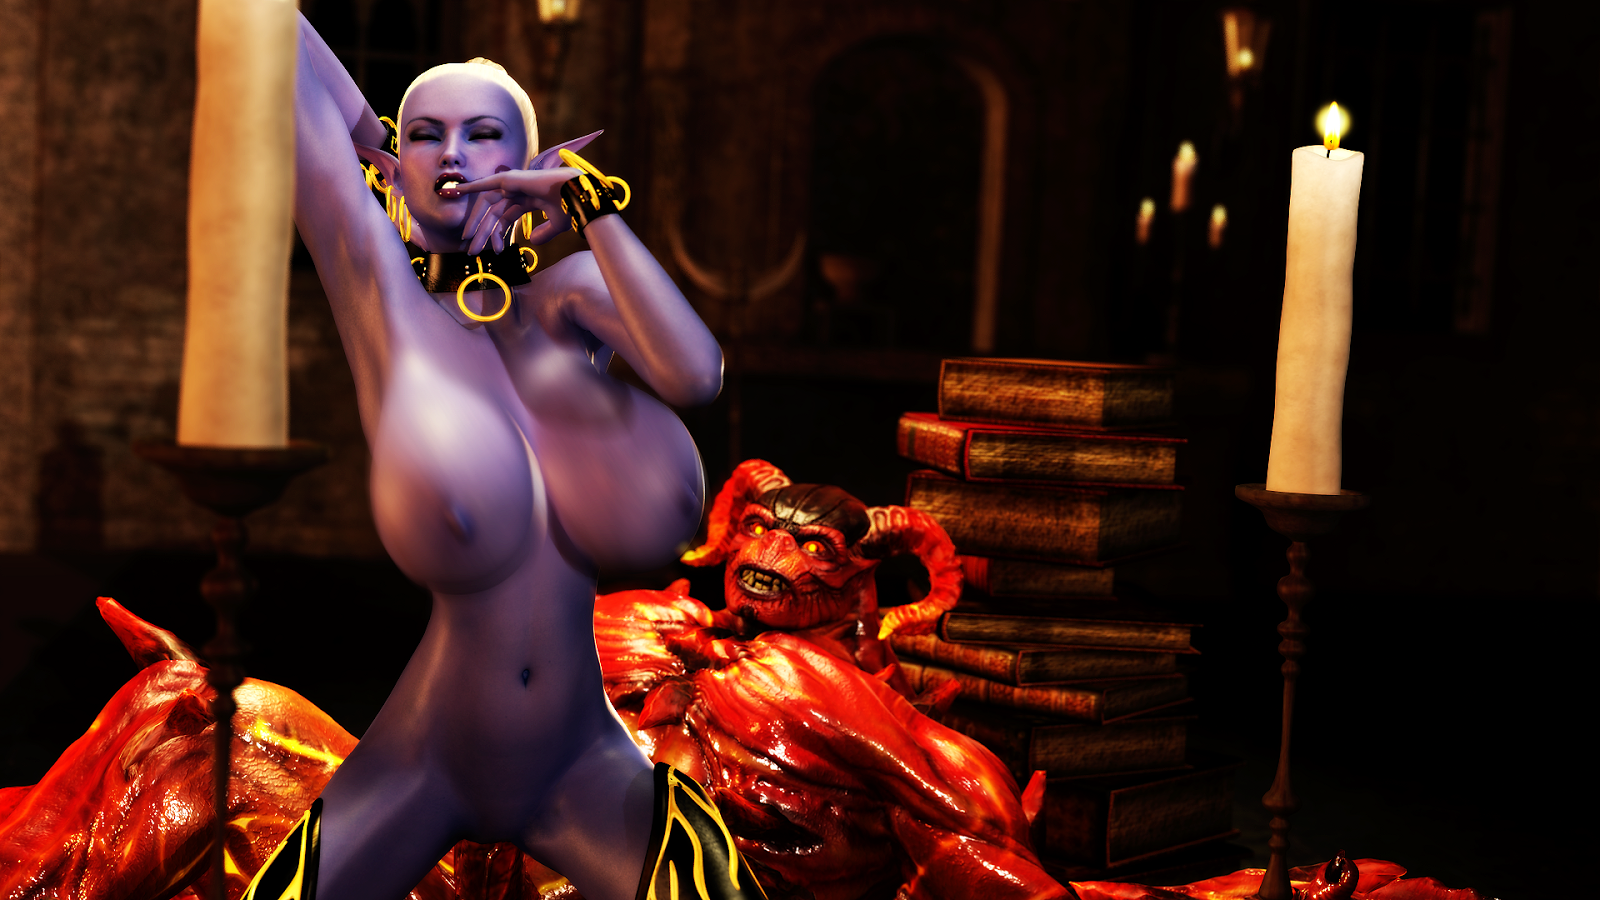 Wallpaper demon nude 3d erotica videos